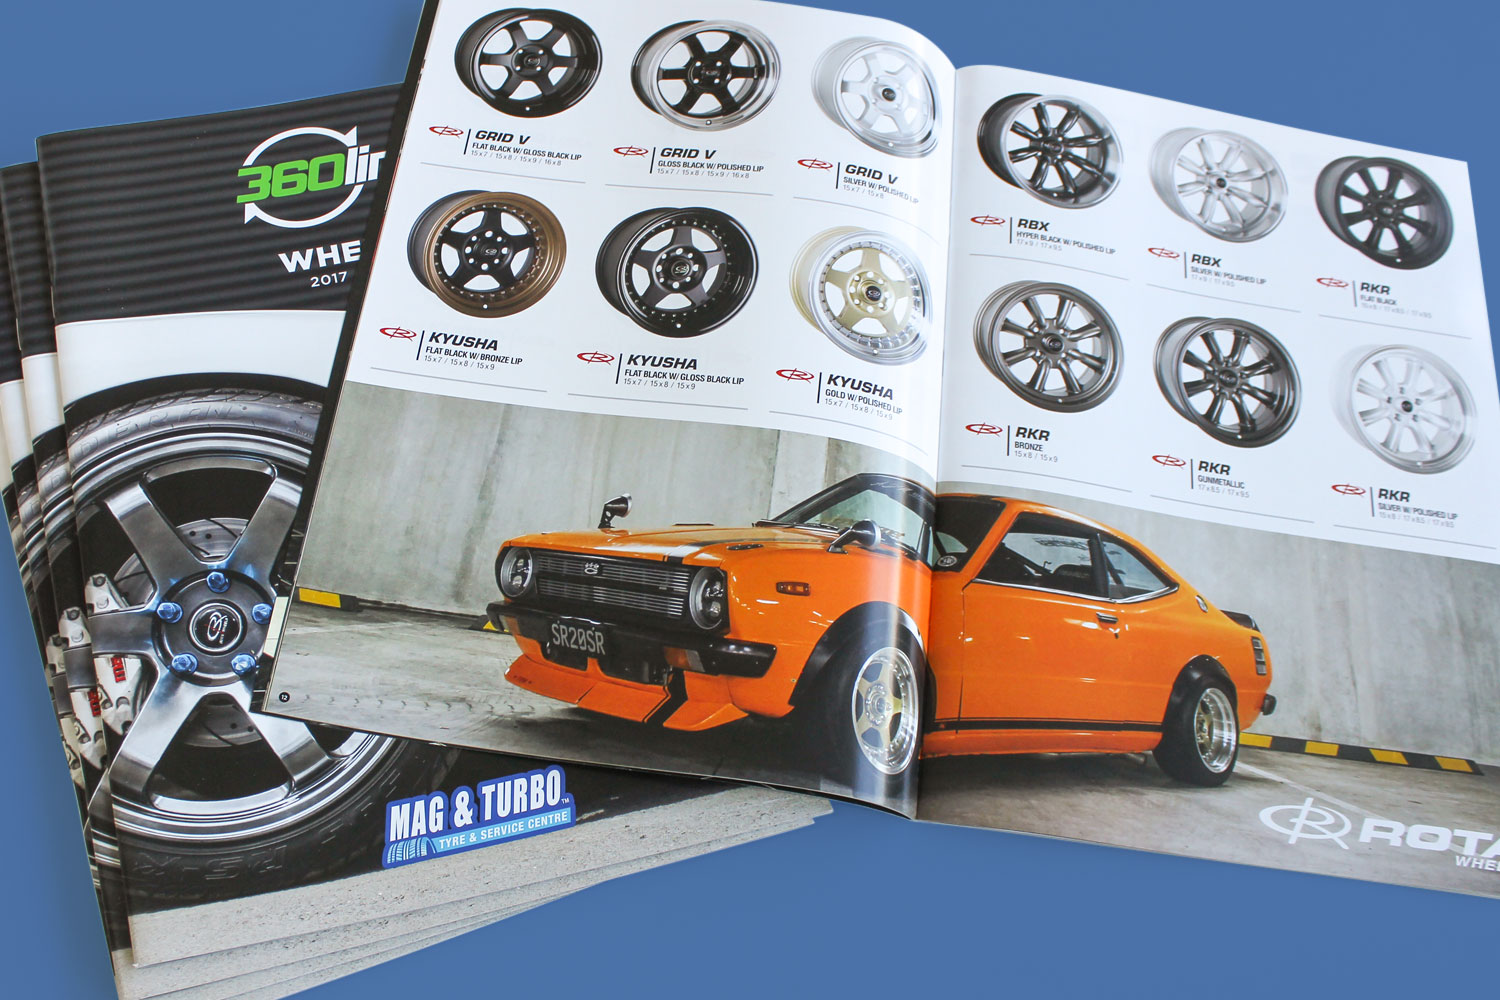 Catalogue Design - 360 Link Wheels